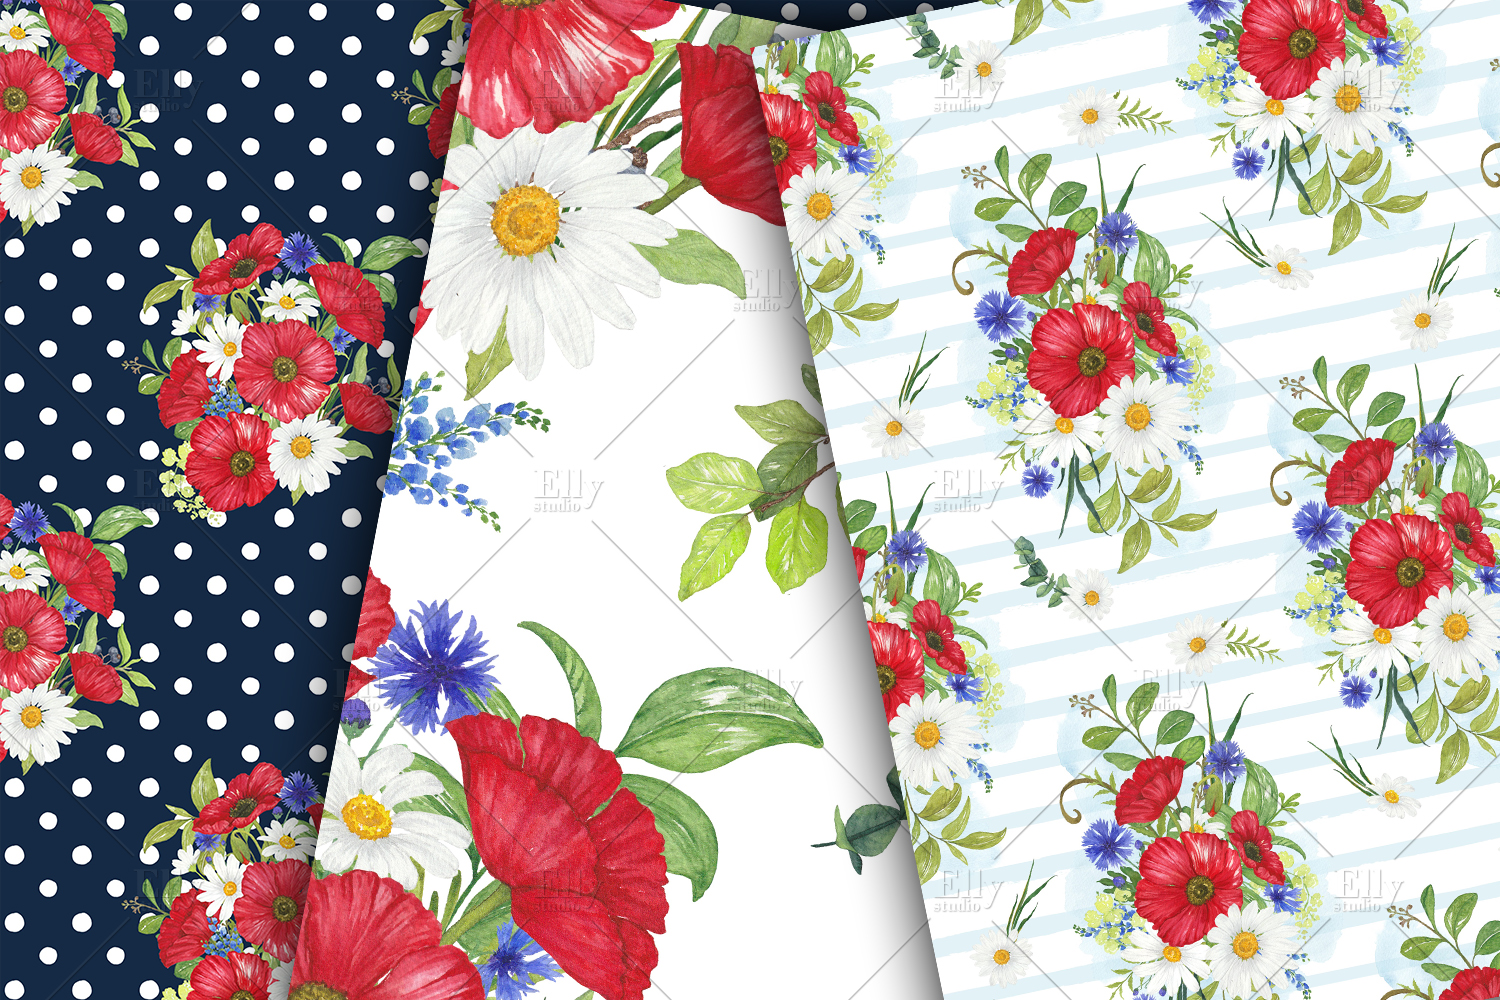 Poppies Digital Papers Floral Seamless Patterns example image 5